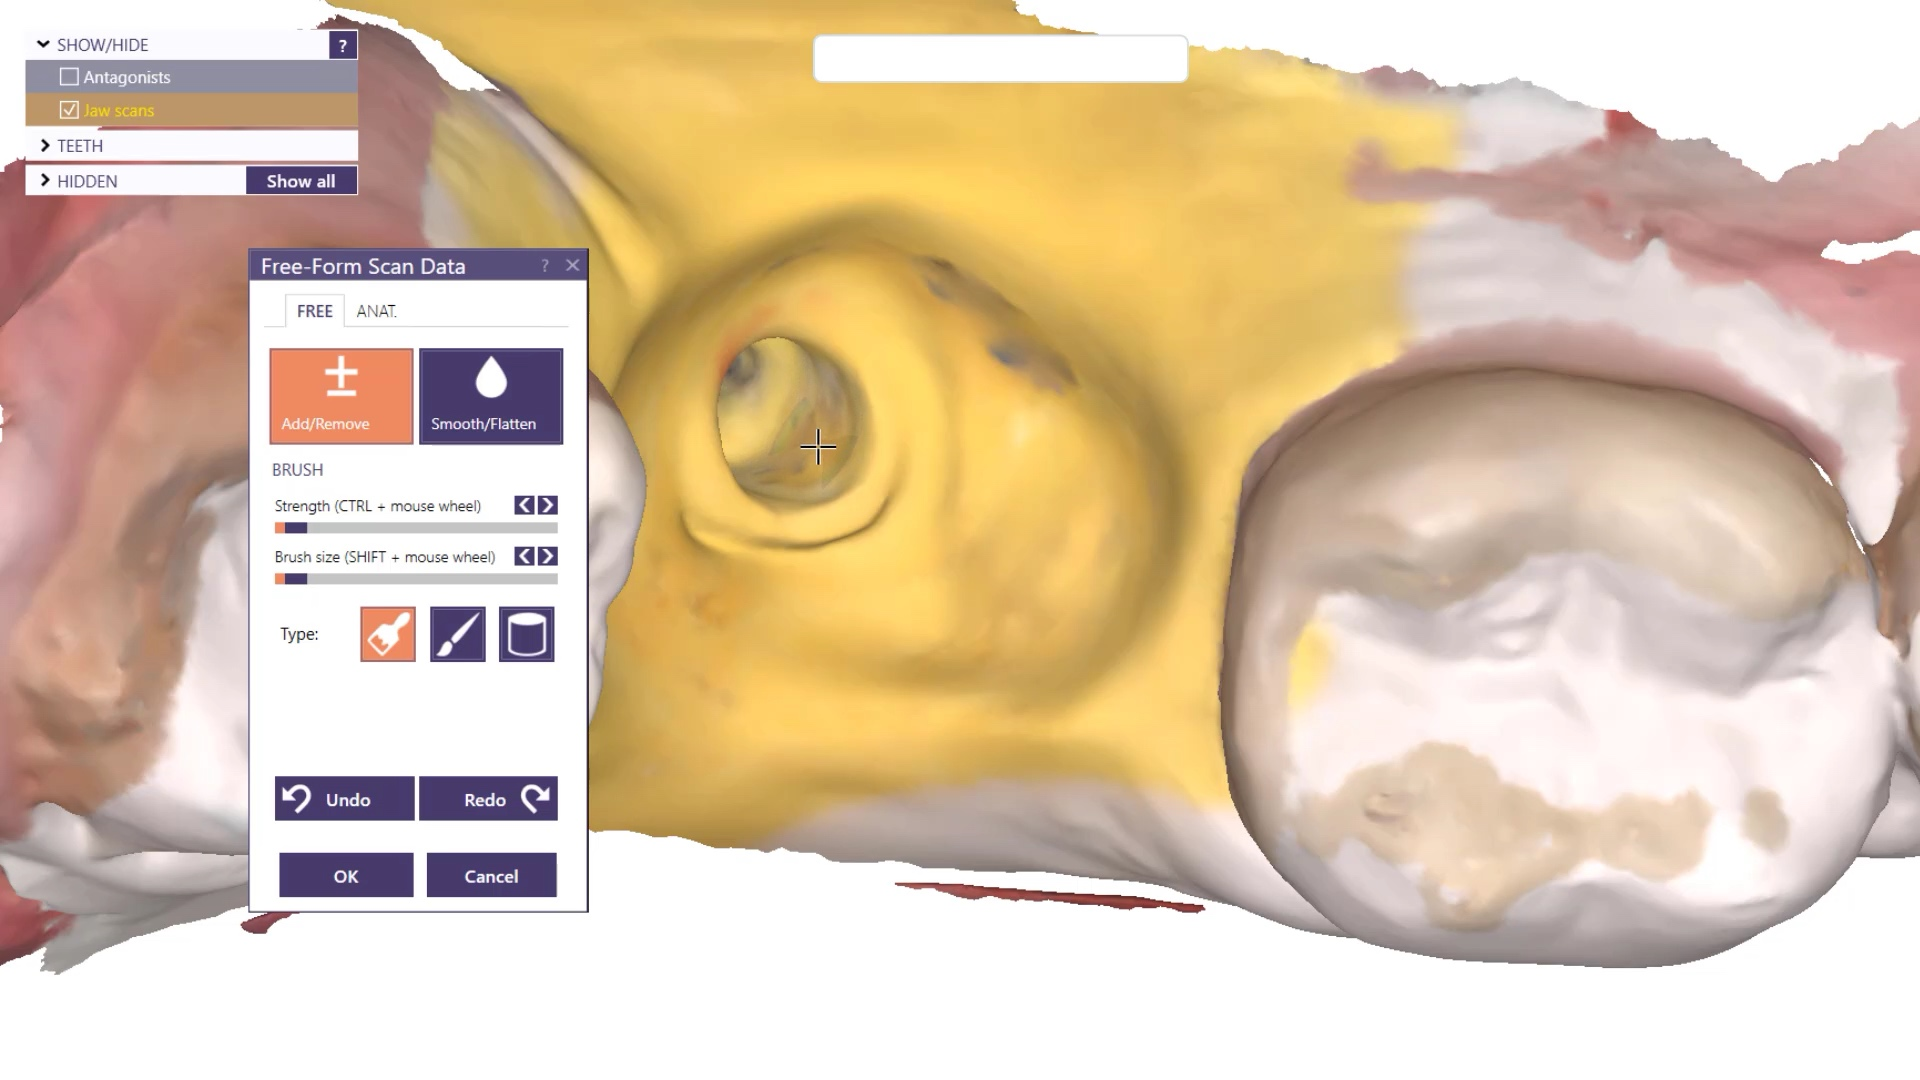 Saving an Integrated Implant by Treating it as a Cast Post and Core by Combining Medit i700 Intra-Oral Scan with a Physical Impression of fixture's Internal Shape